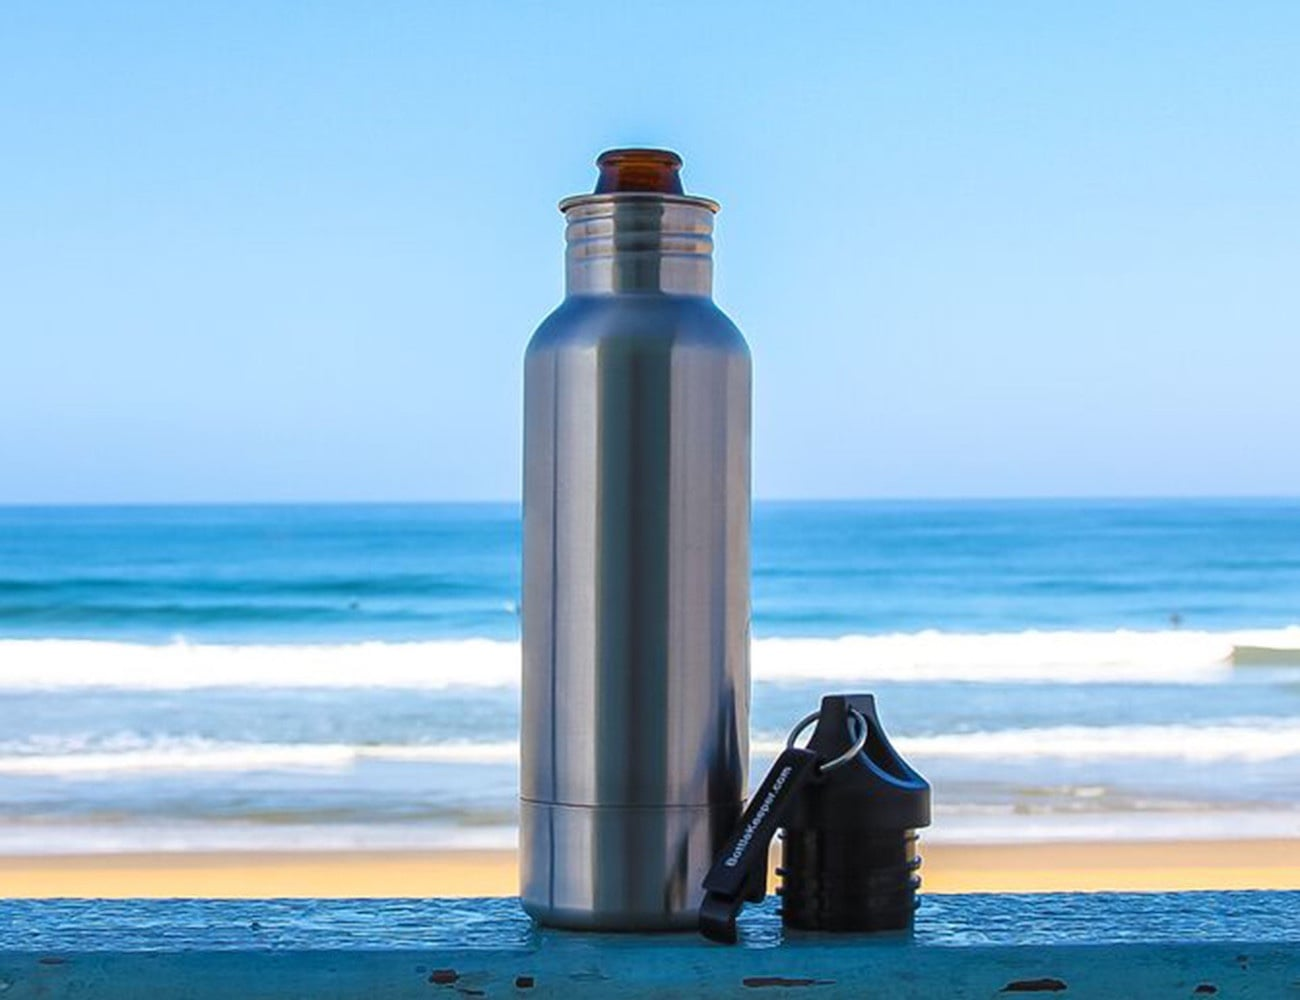 BottleKeeper Stainless Steel Beer Bottle Insulator